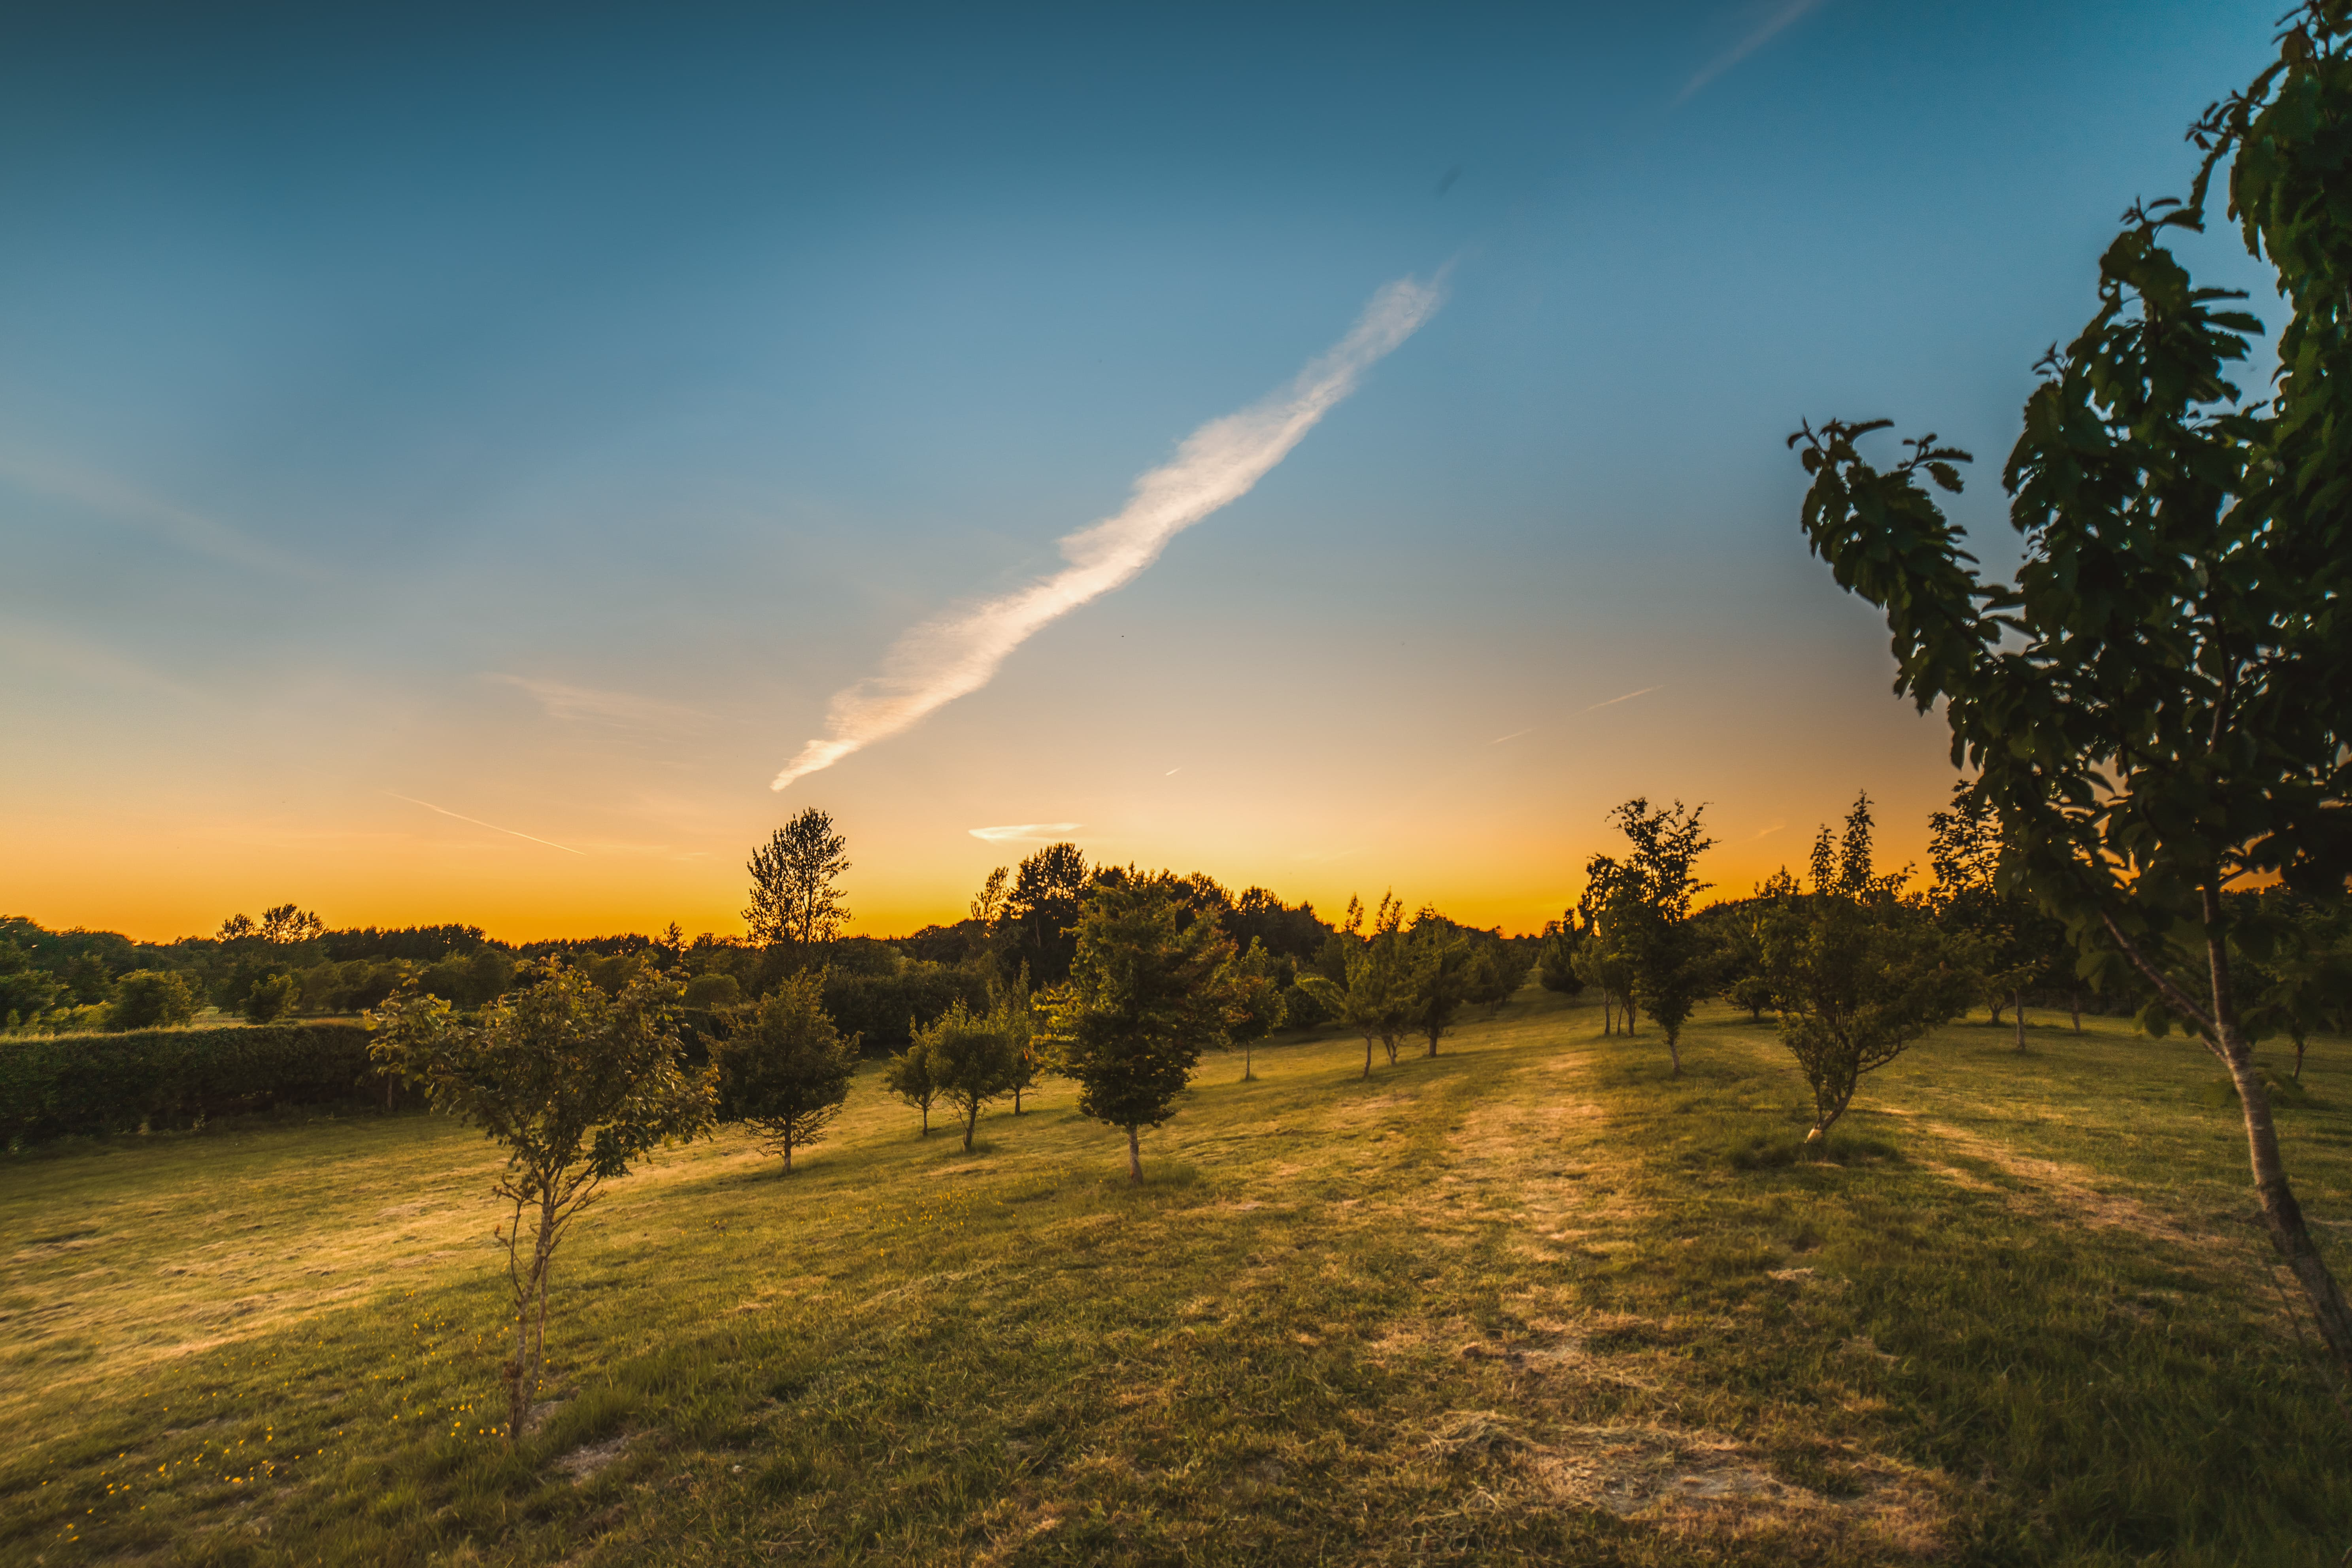 Fruit tree's in a field at sunset